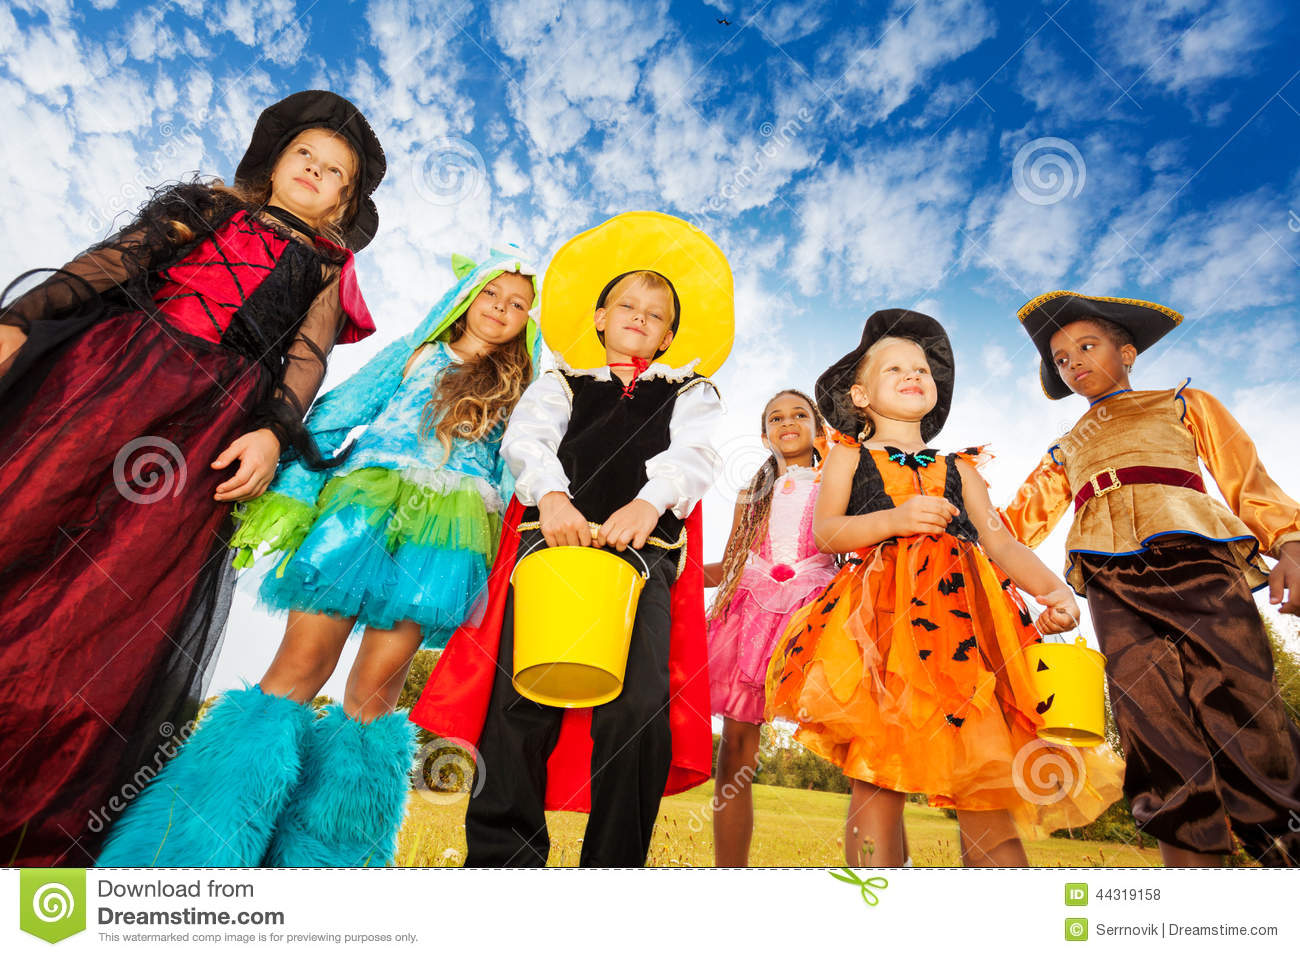 Friend Group Halloween Costumes Kids.Group Of Kids In Halloween Costumes Looks Down Stock Photo